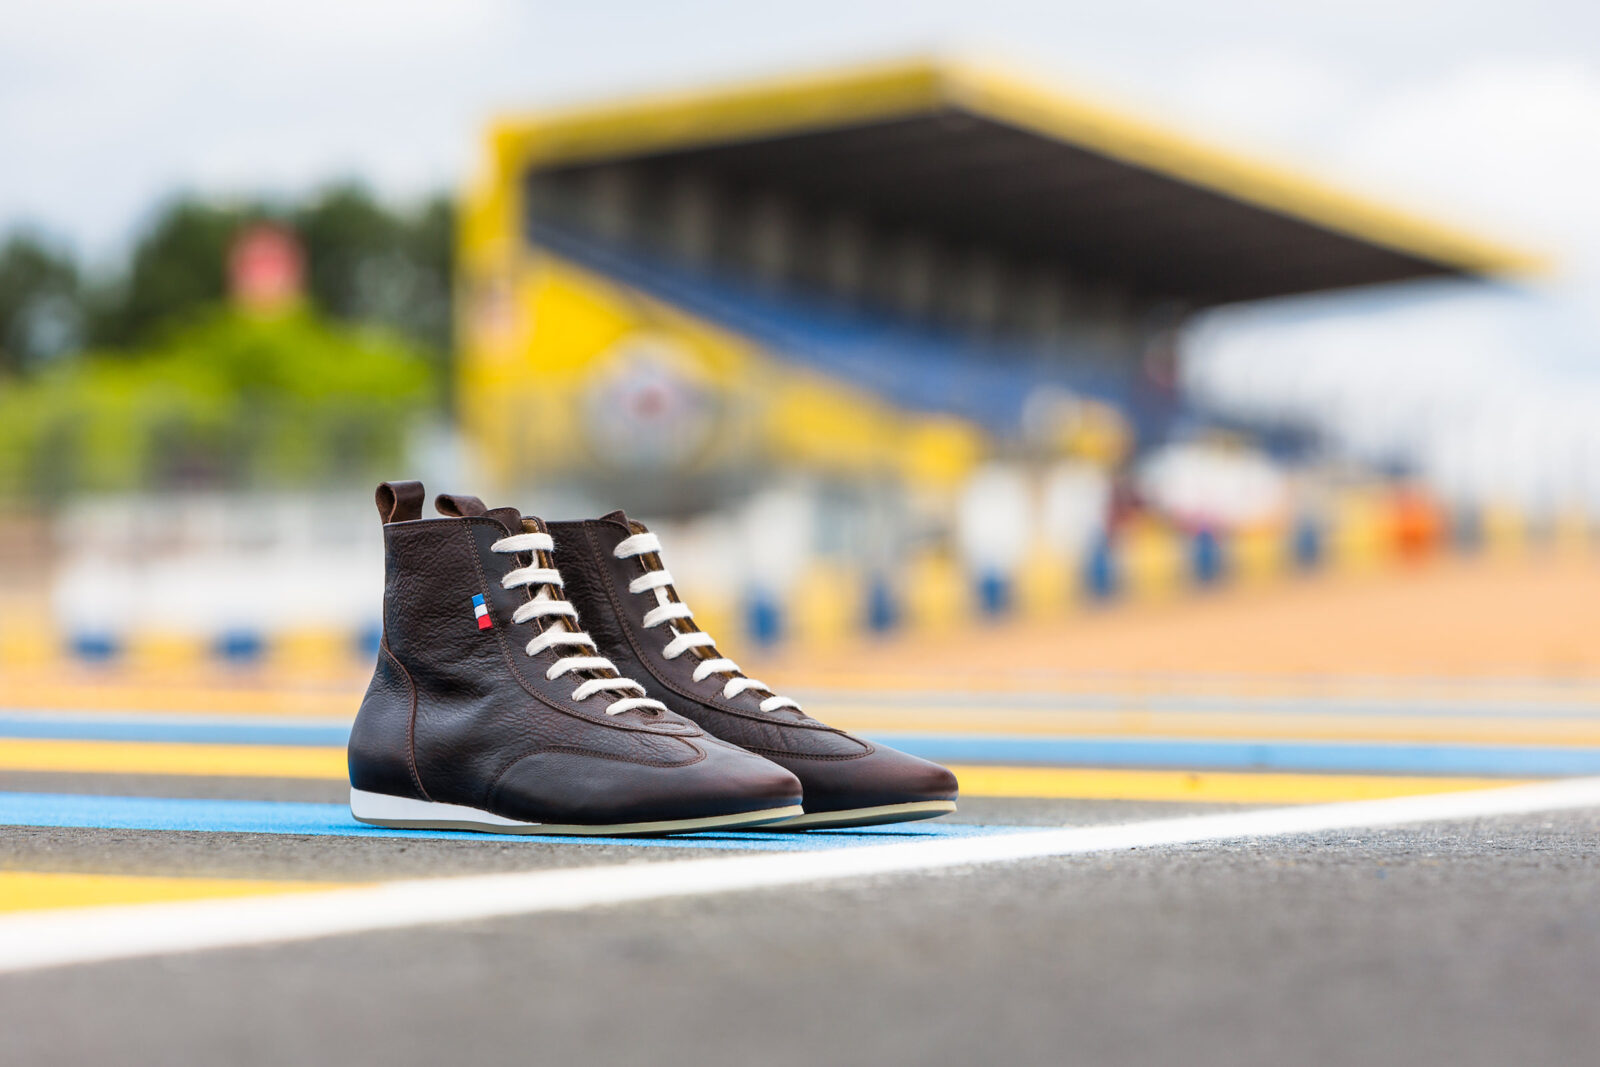 The Piloti 1923 Retro Limited Edition 24H Le Mans Driving Shoe